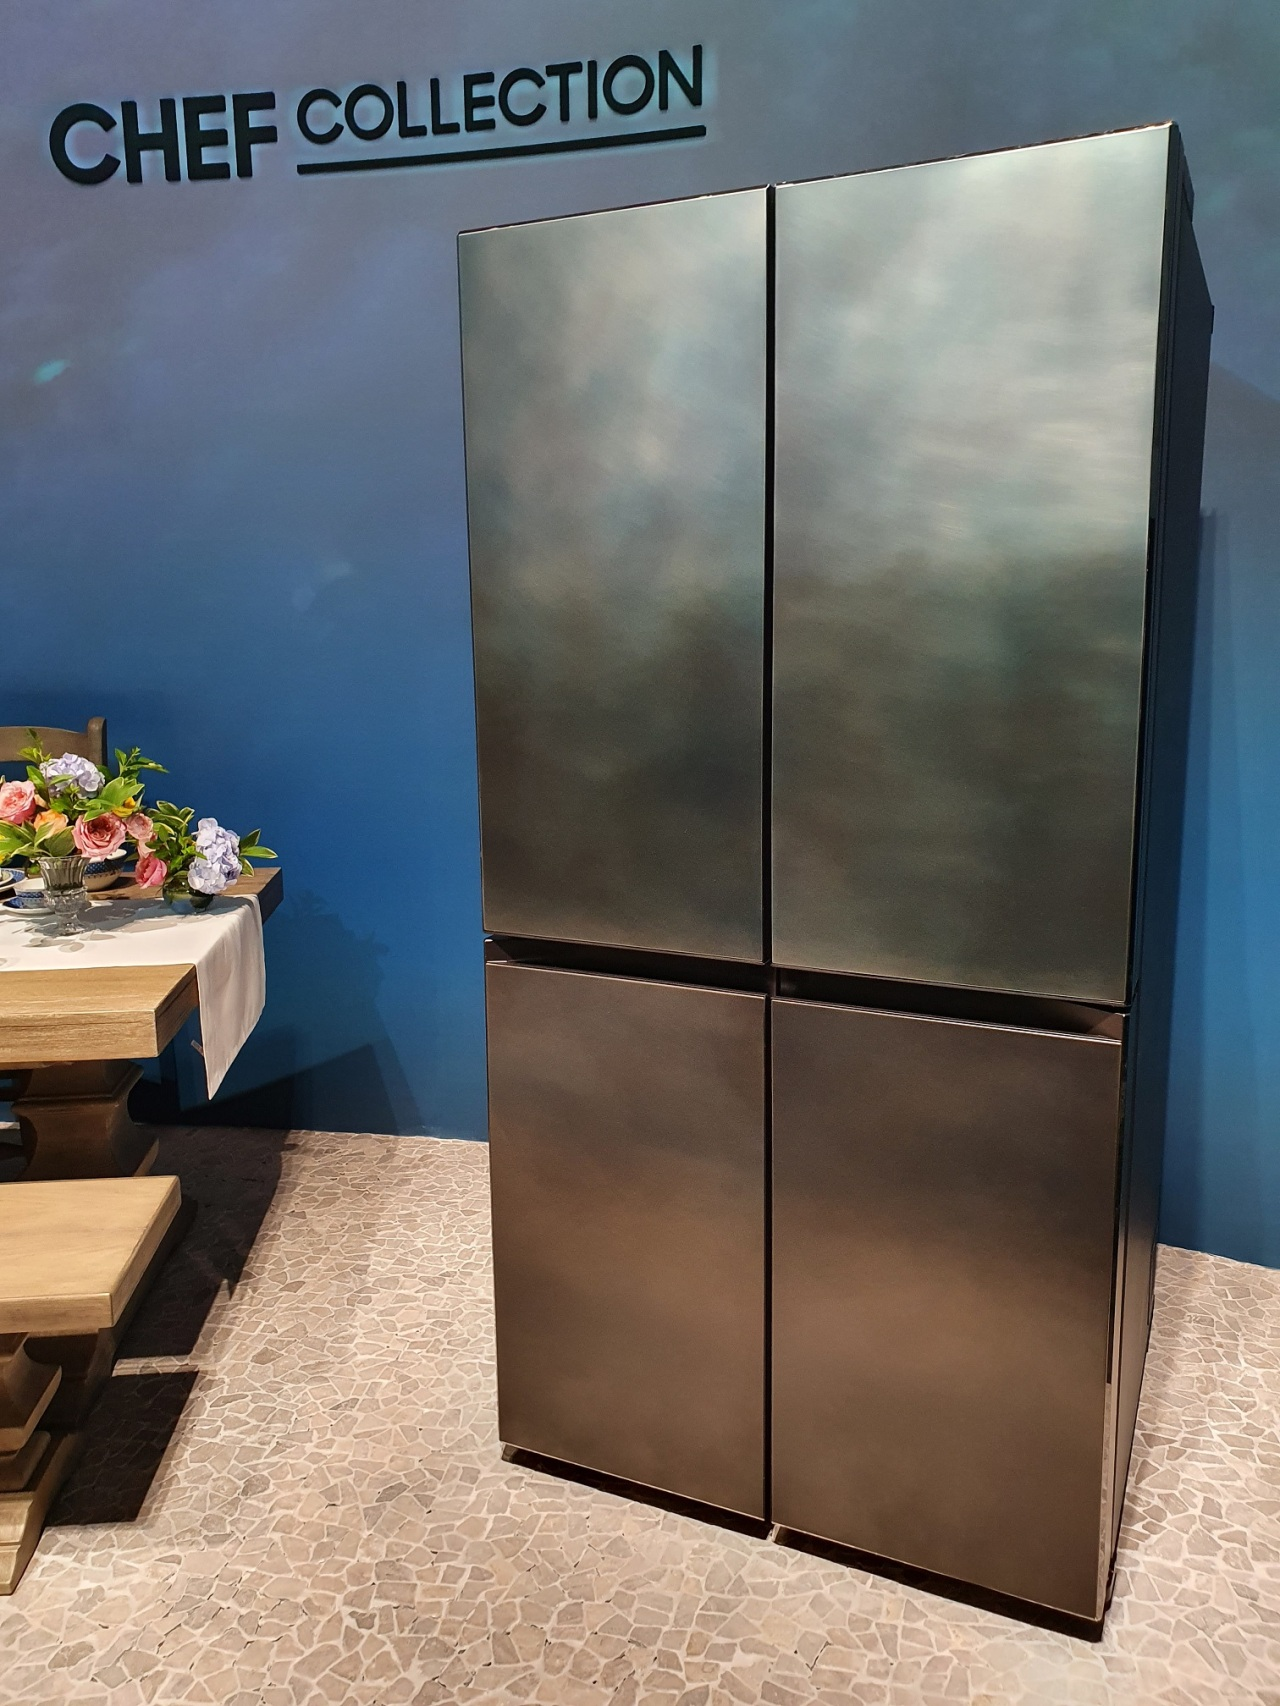 Samsung Electronics' New Chef Collection refrigerator model Mare Blue (Kim Byung-wook/The Korea Herald)